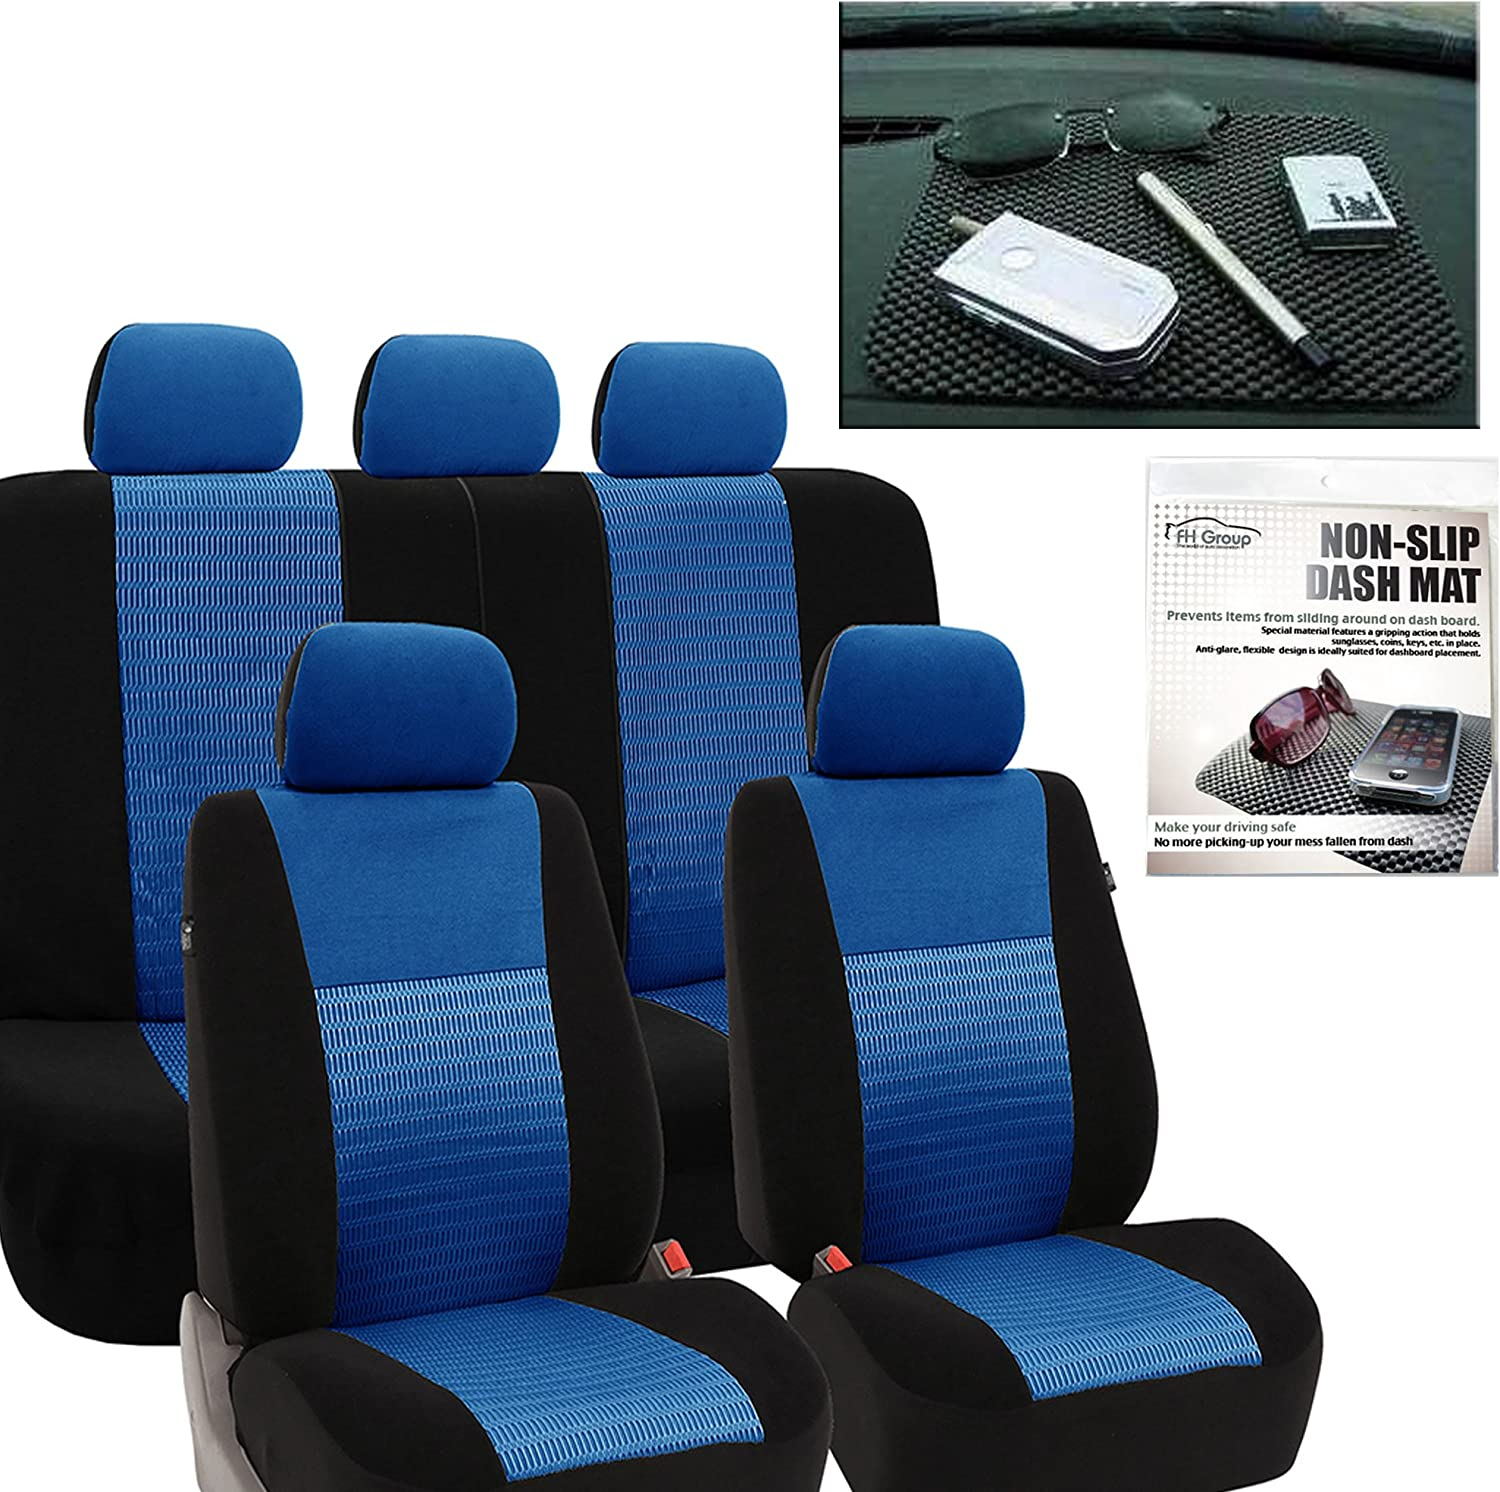 FH Group FH-FB060115 Trendy Elegance Car Seat Covers Blue/Black, Airbag Compatible and Split Bench FH1002 Non-Slip Dash Grip Pad - Fit Most Car, Truck, SUV, or Van